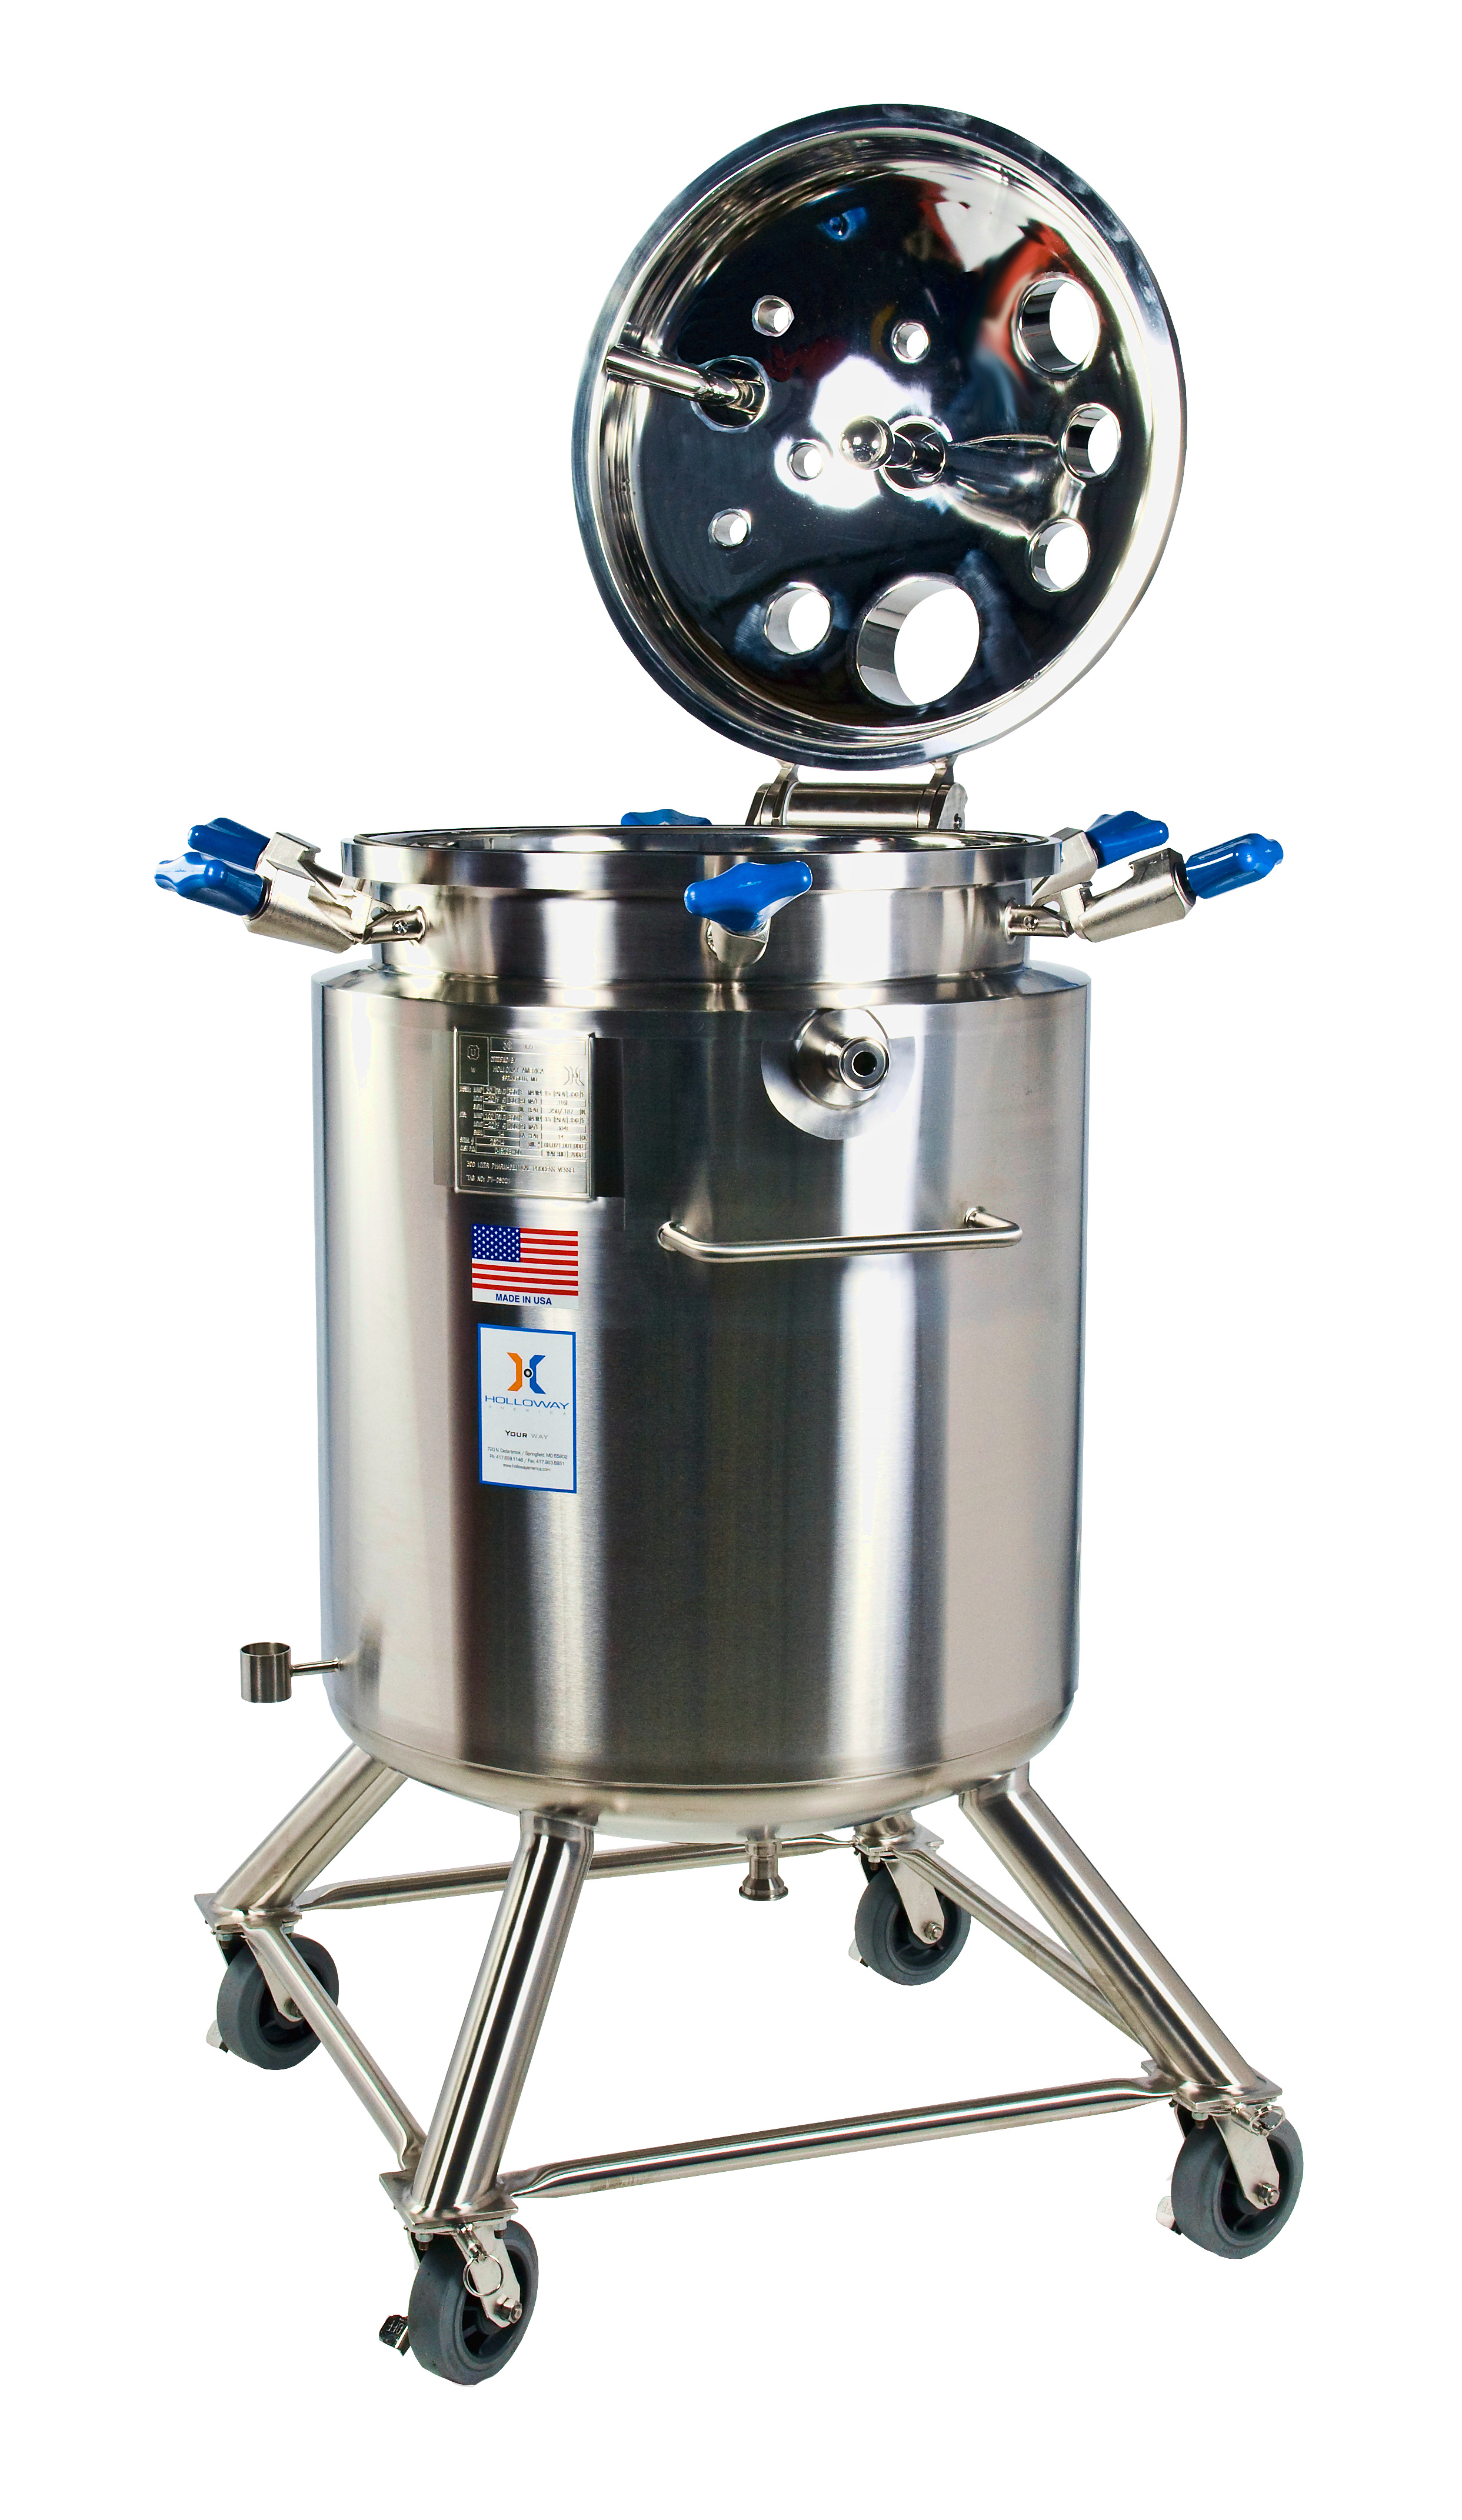 An ASME mixer tank meets stainless steel ASME code for ASME pressure vessels.